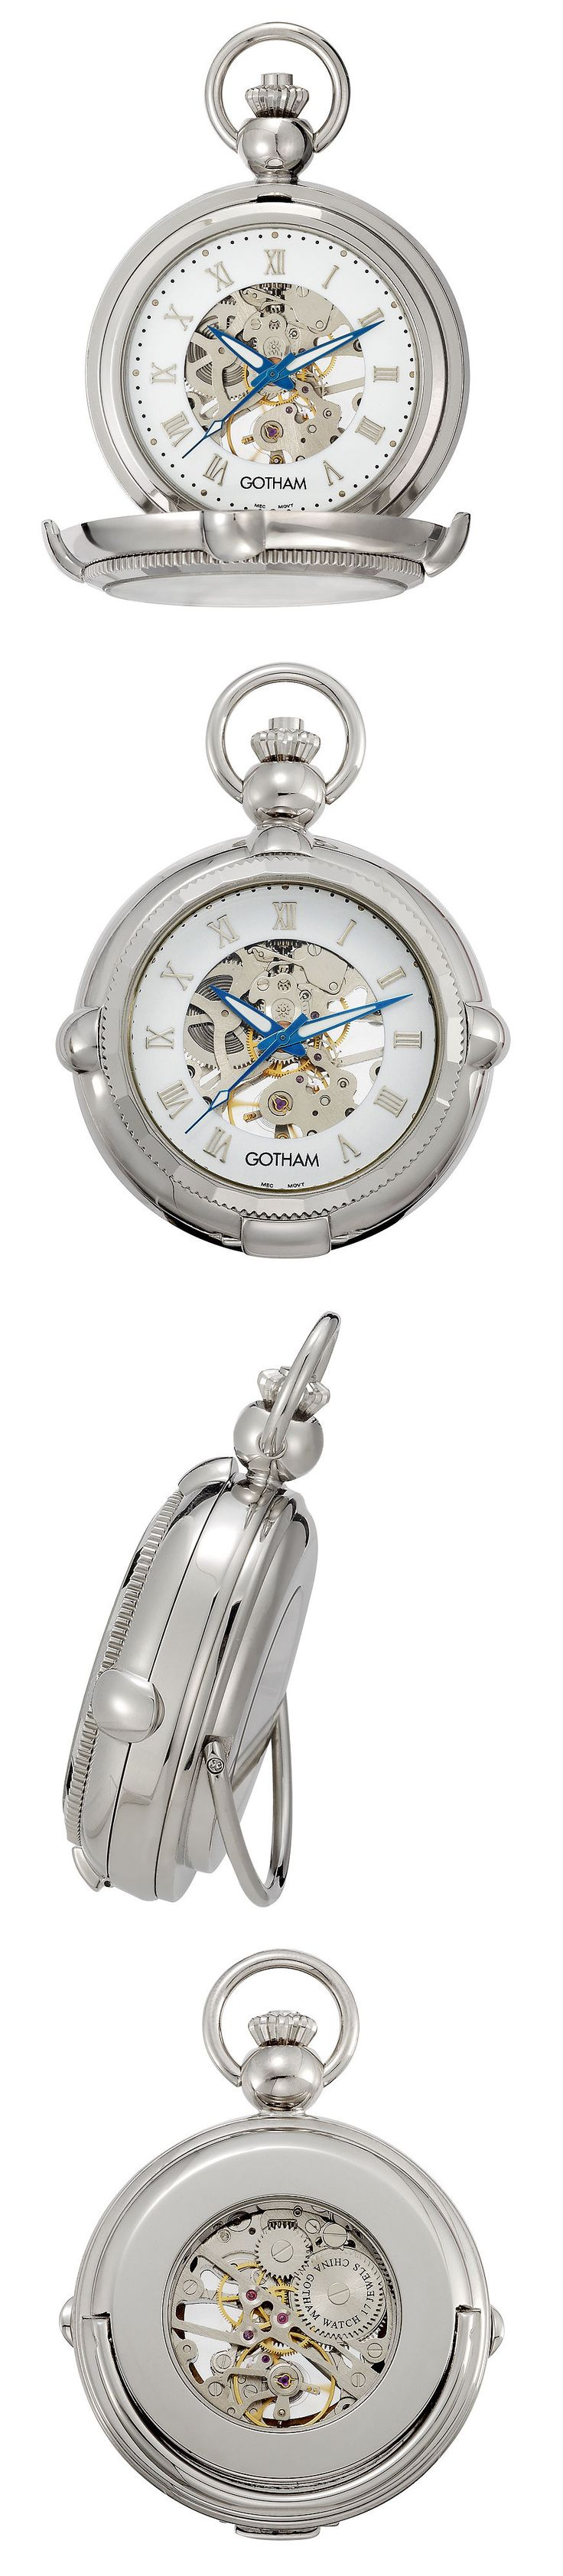 Other Pocket Watches 398: Gotham Mens Silver-Tone Photo Insert Skeleton Pocket Watch With Built-In Stand BUY IT NOW ONLY: $99.95